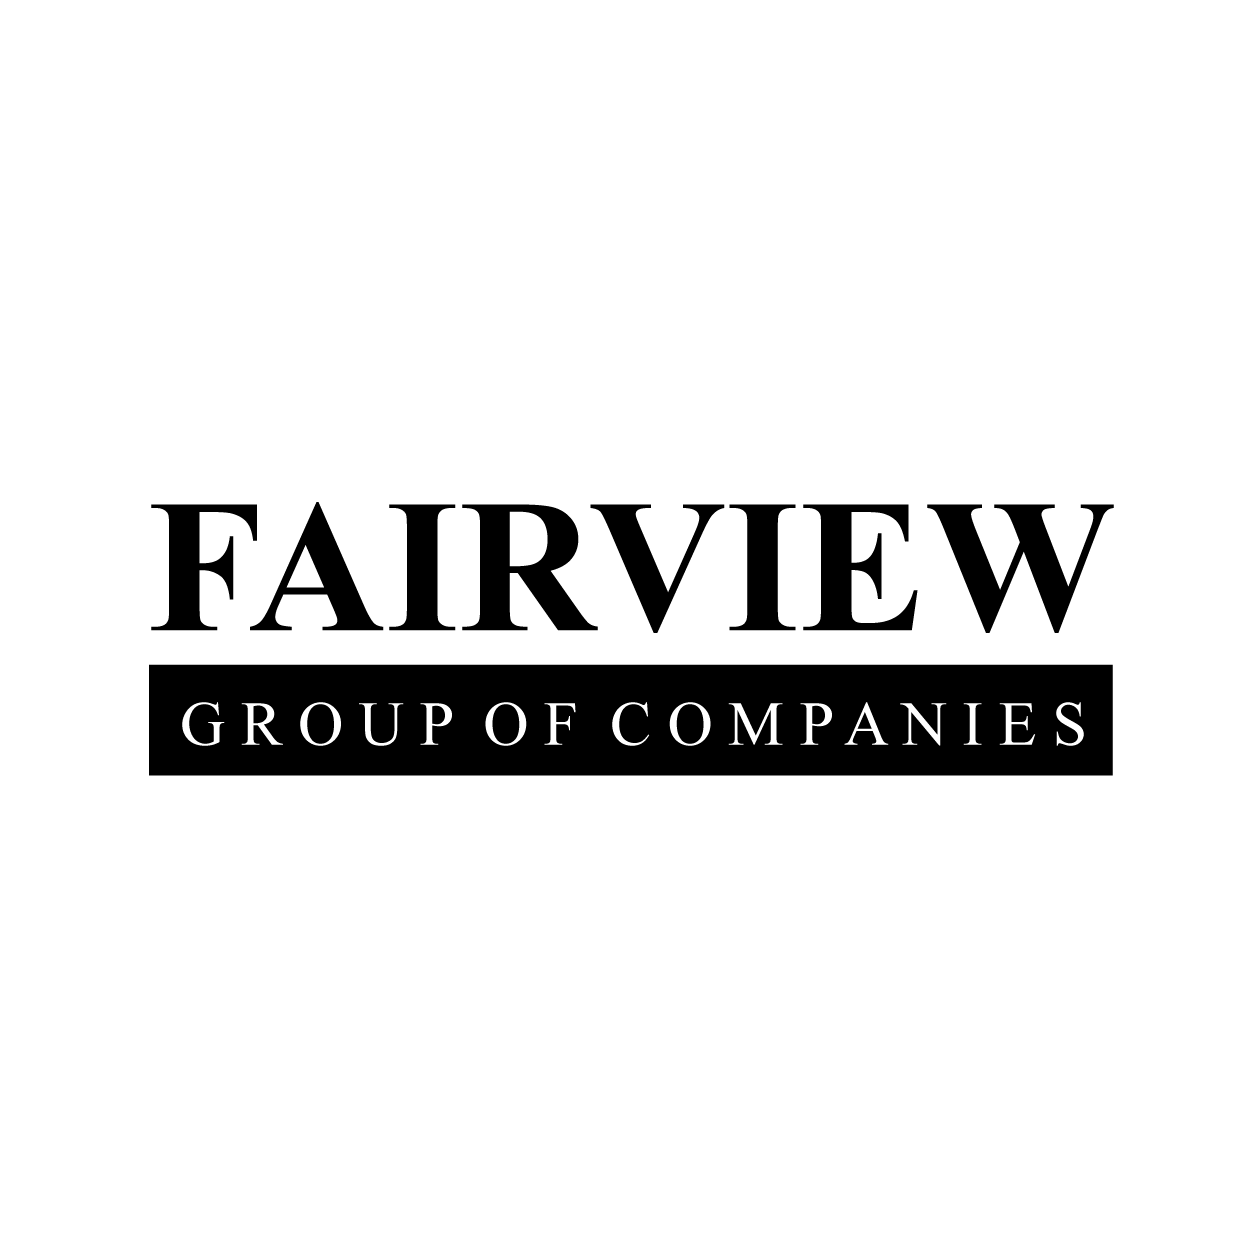 Fairview Group of Companies